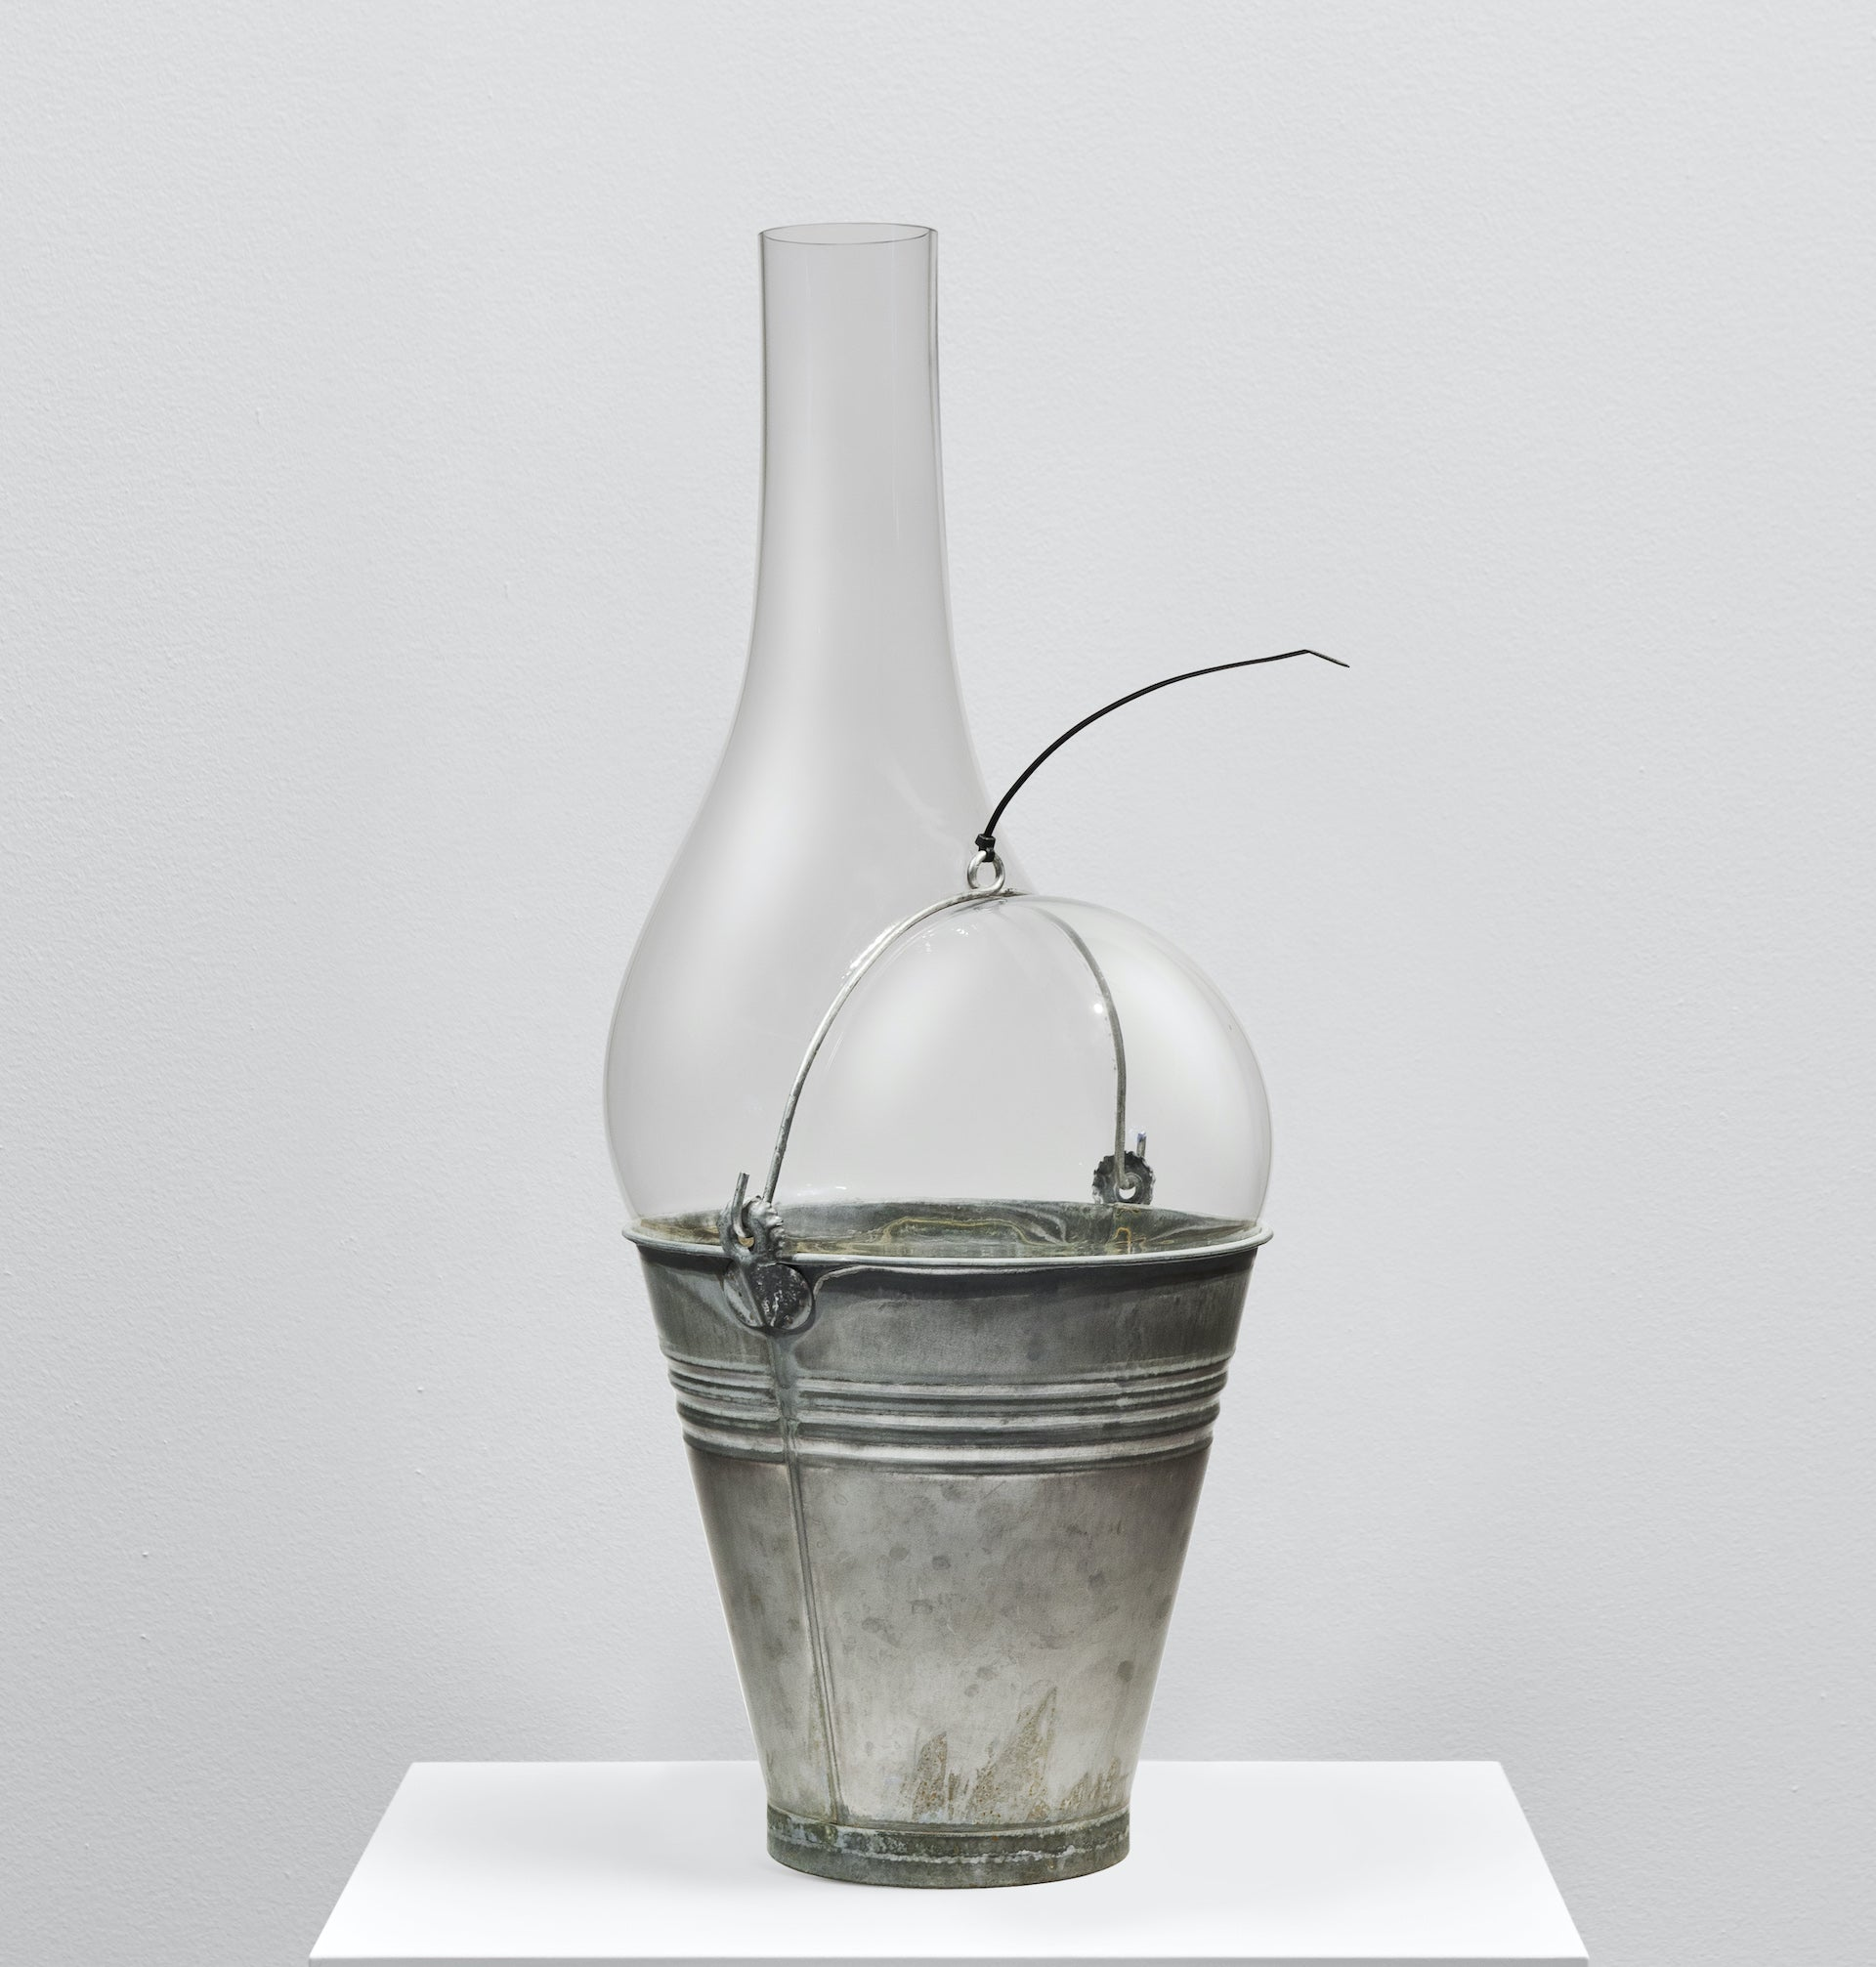 Bucket by Ron Arad for Venini, 2020. Photo © Newlands House Gallery